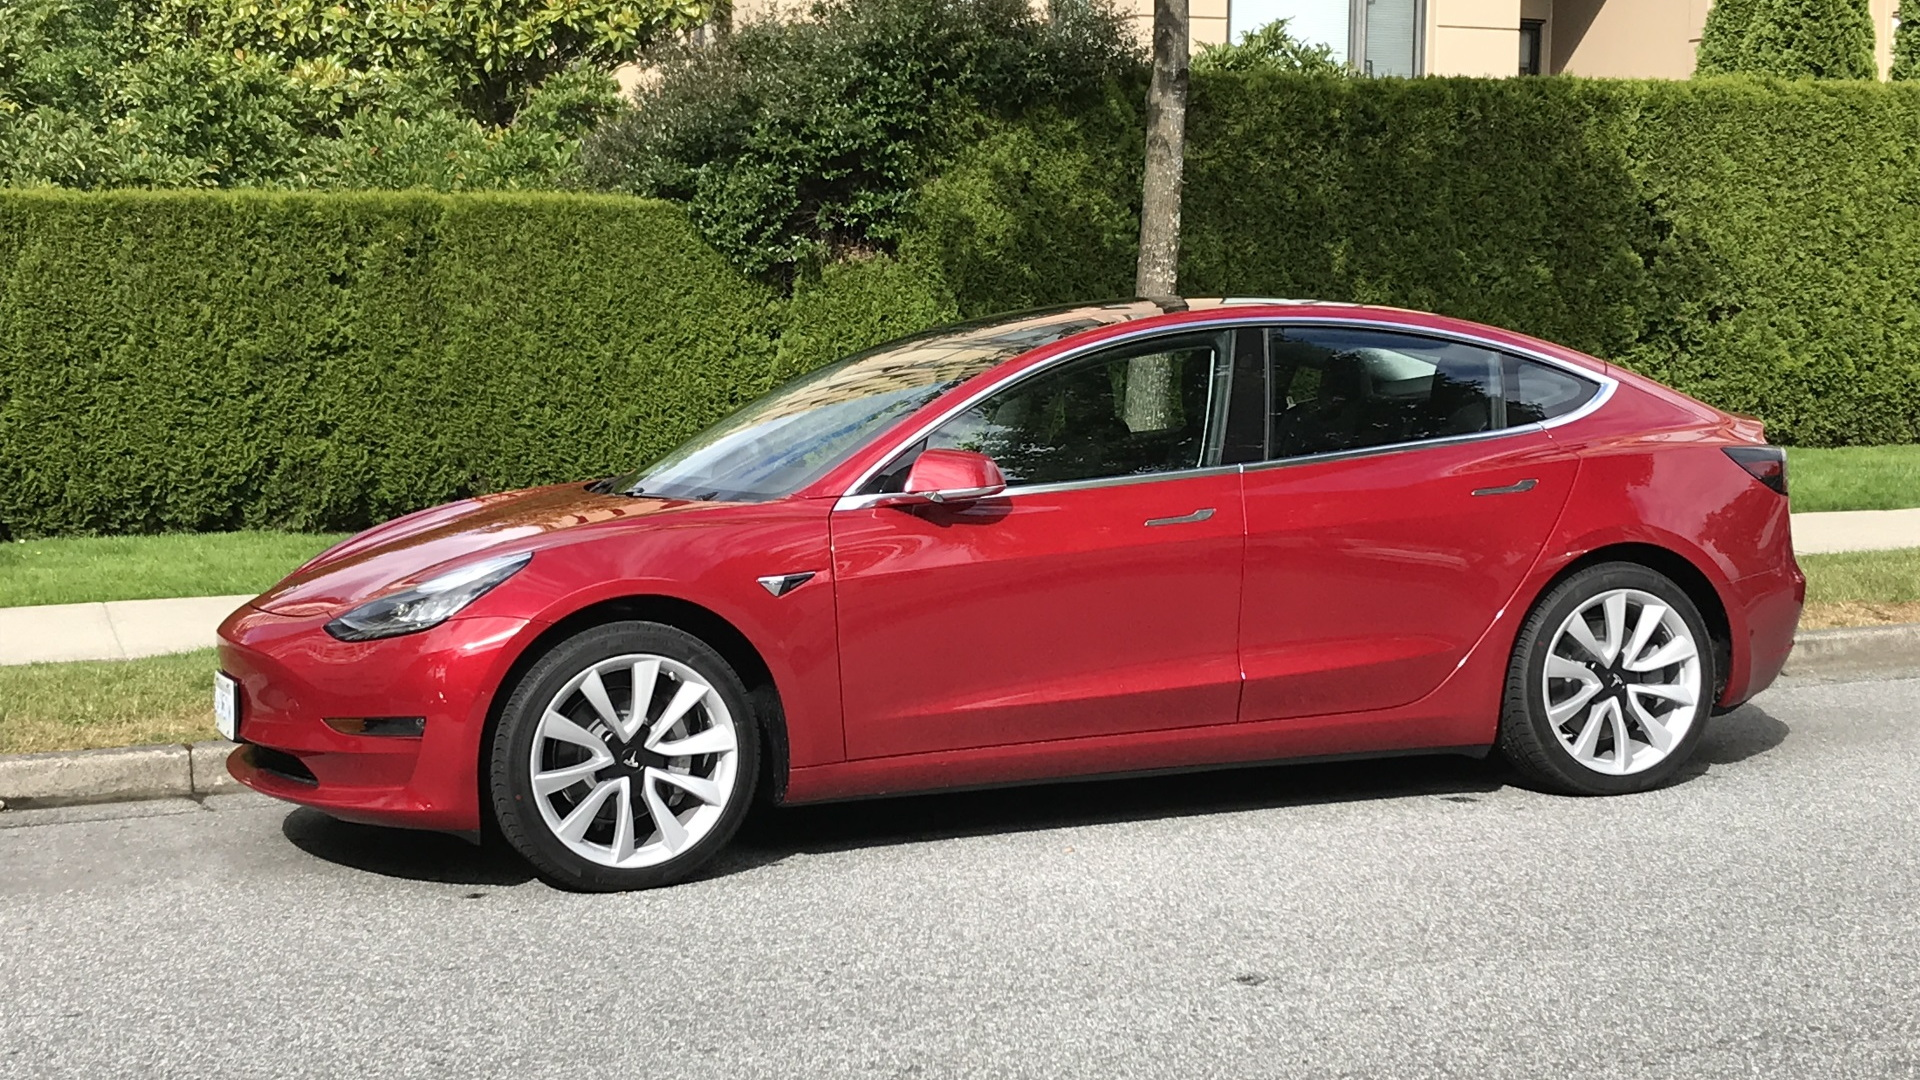 Tesla Model 3 bought [Photo by reader AH]